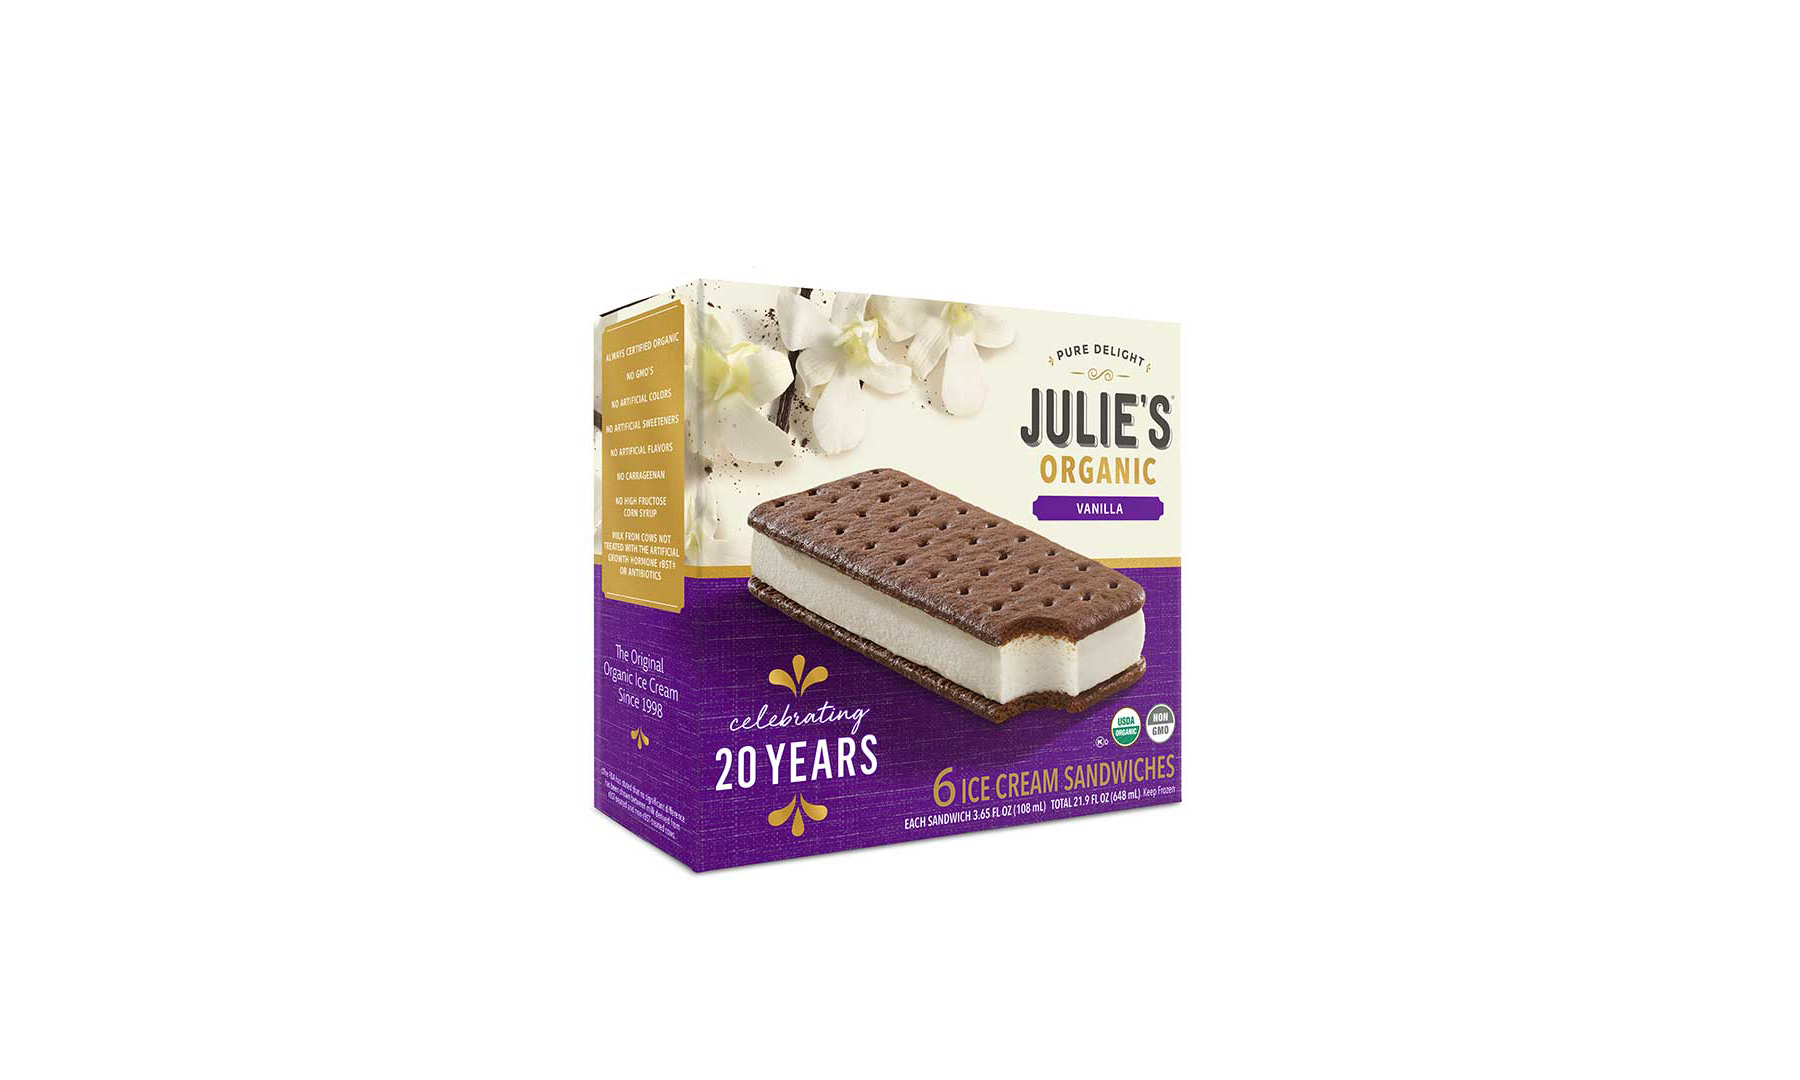 The new packaging for Julie's 20th anniversary ice cream sandwiches.